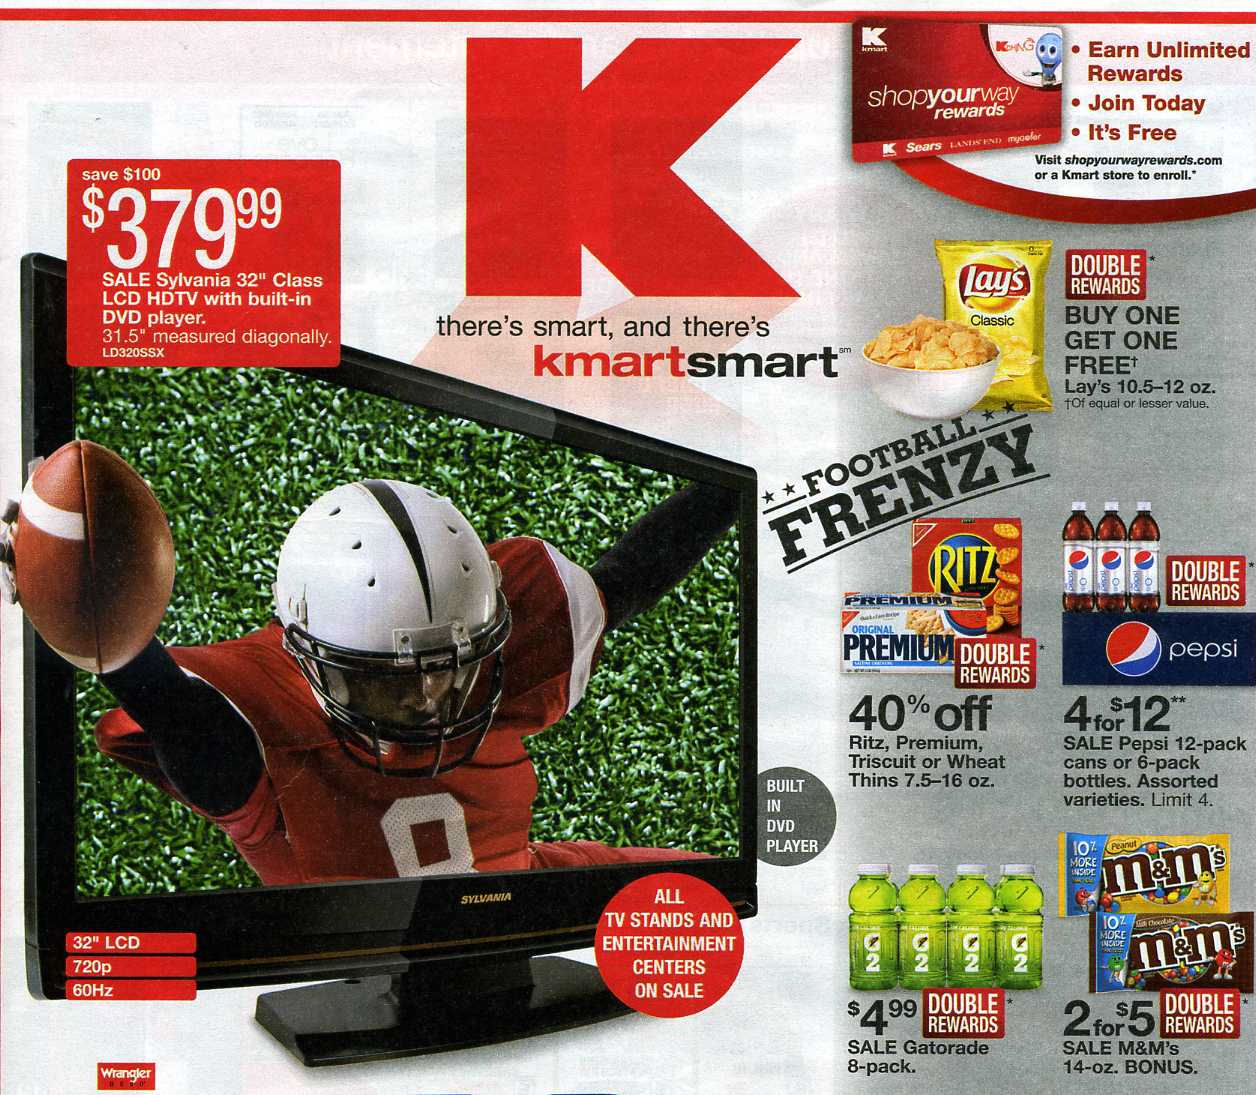 In the K-Mart ad, the guy is playing for the red team wearing number 8